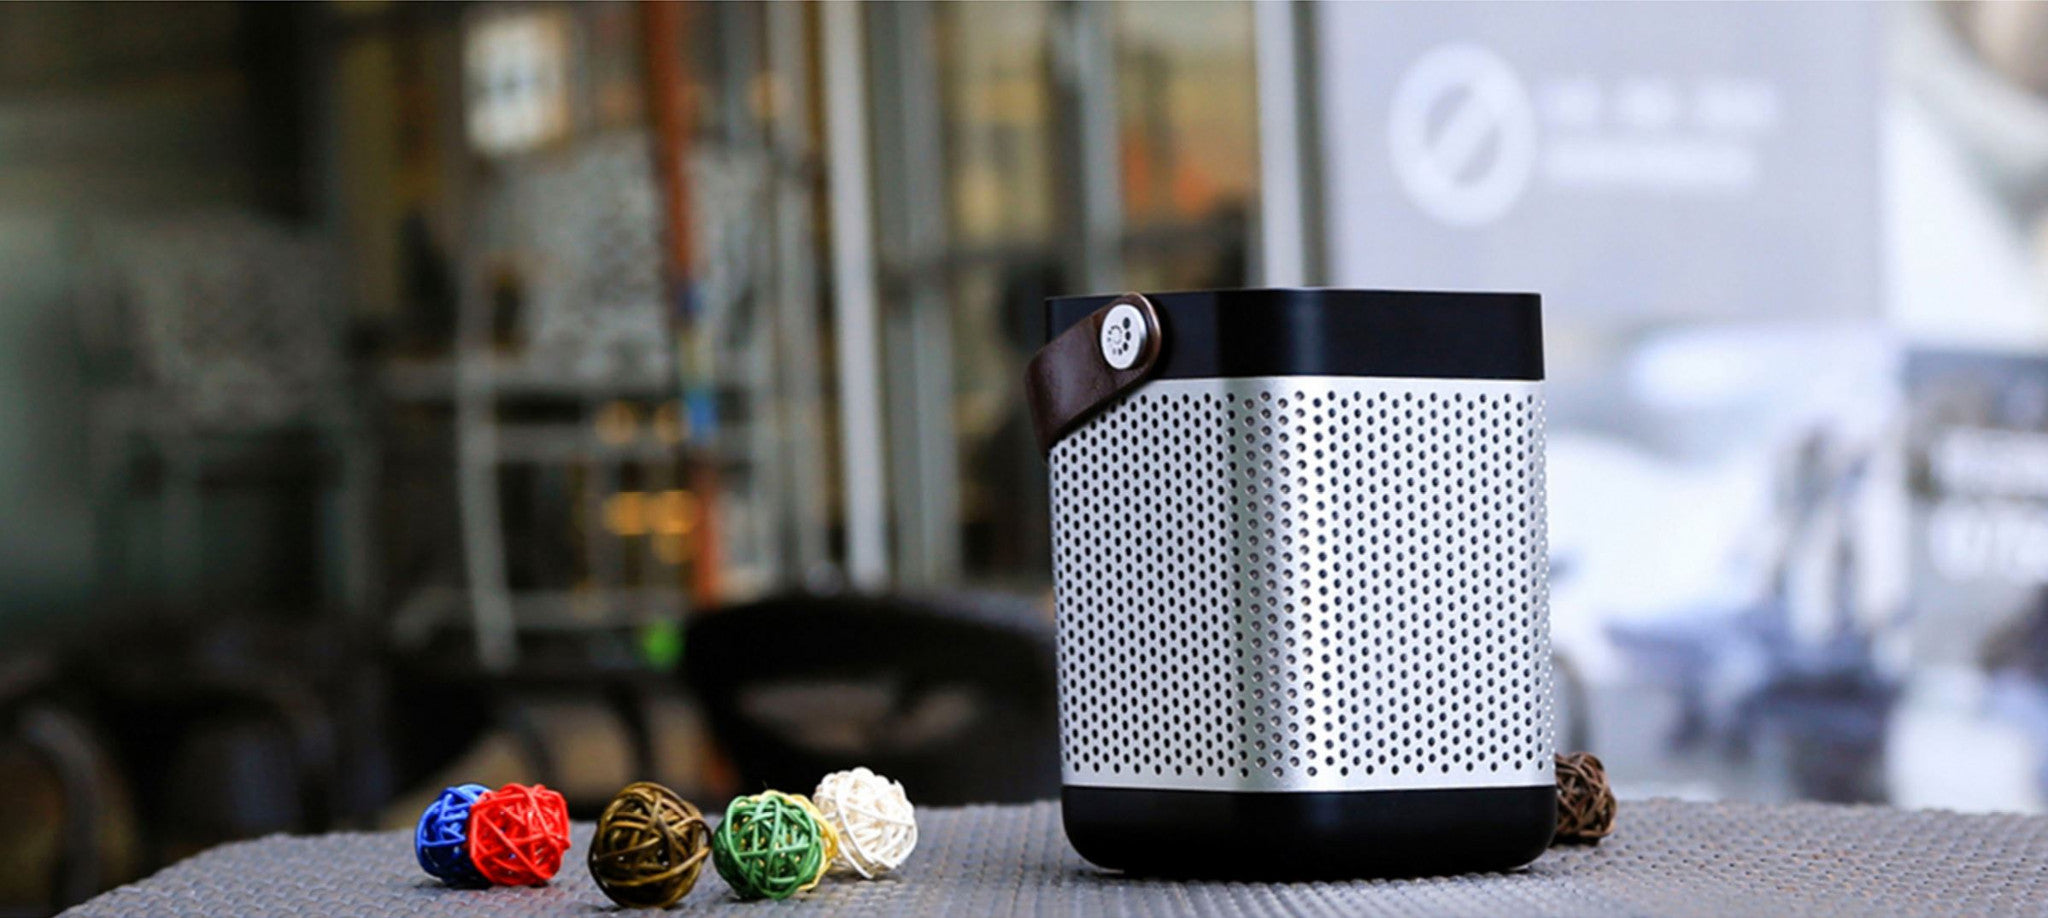 Accolade Fansbox Portable Wireless Speaker